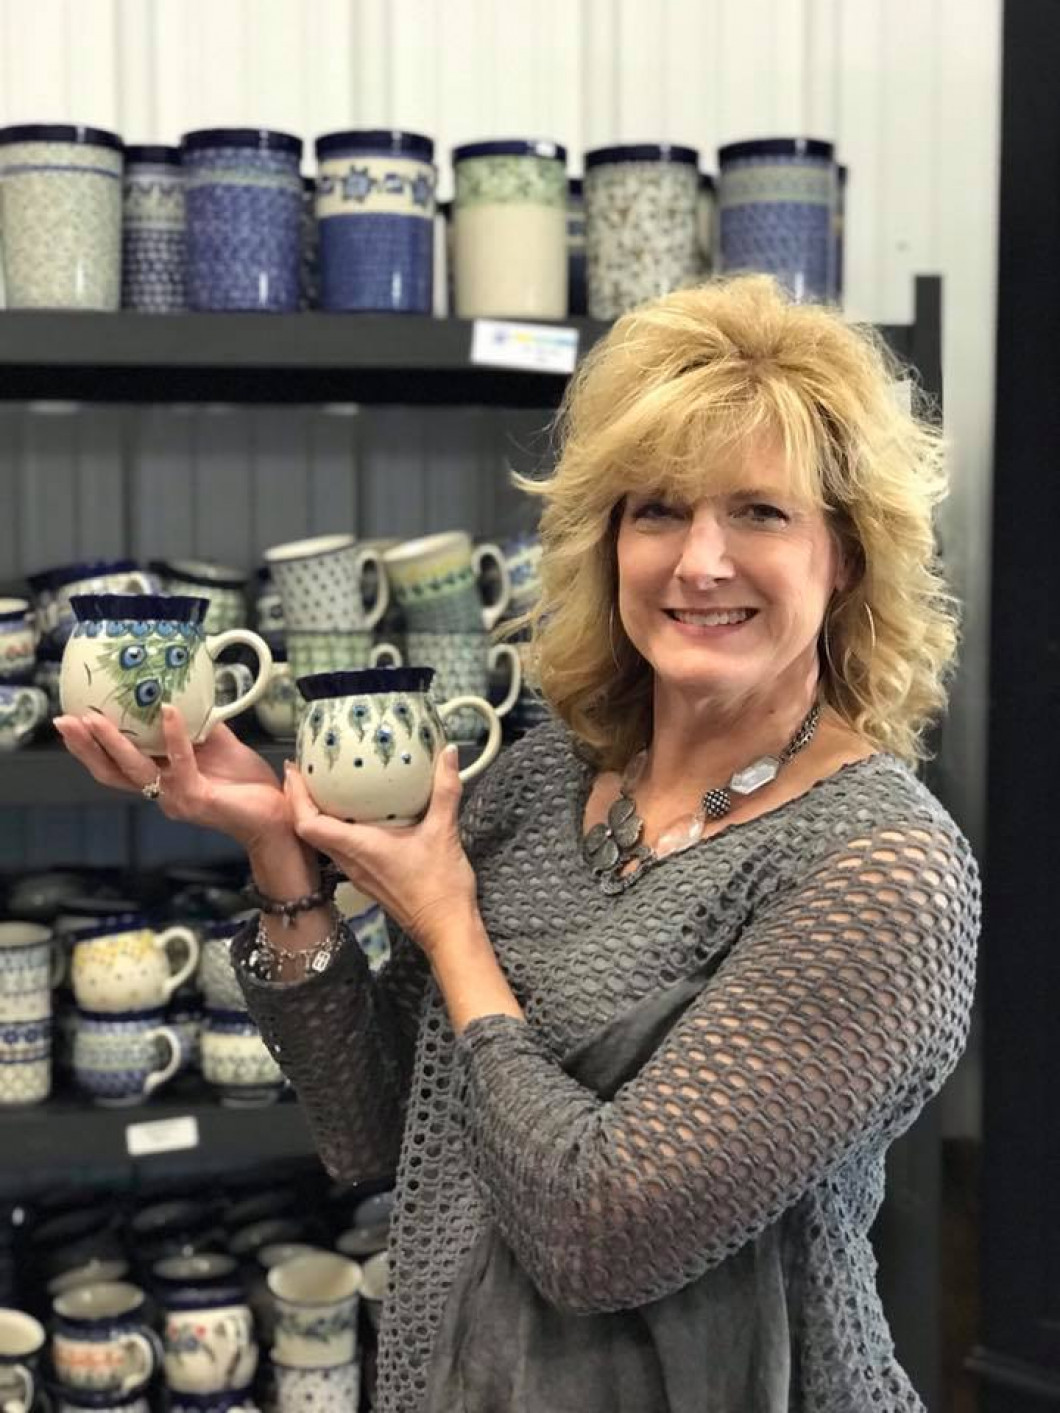 We now carry Polish Pottery which hails from Boleslawiec, Poland